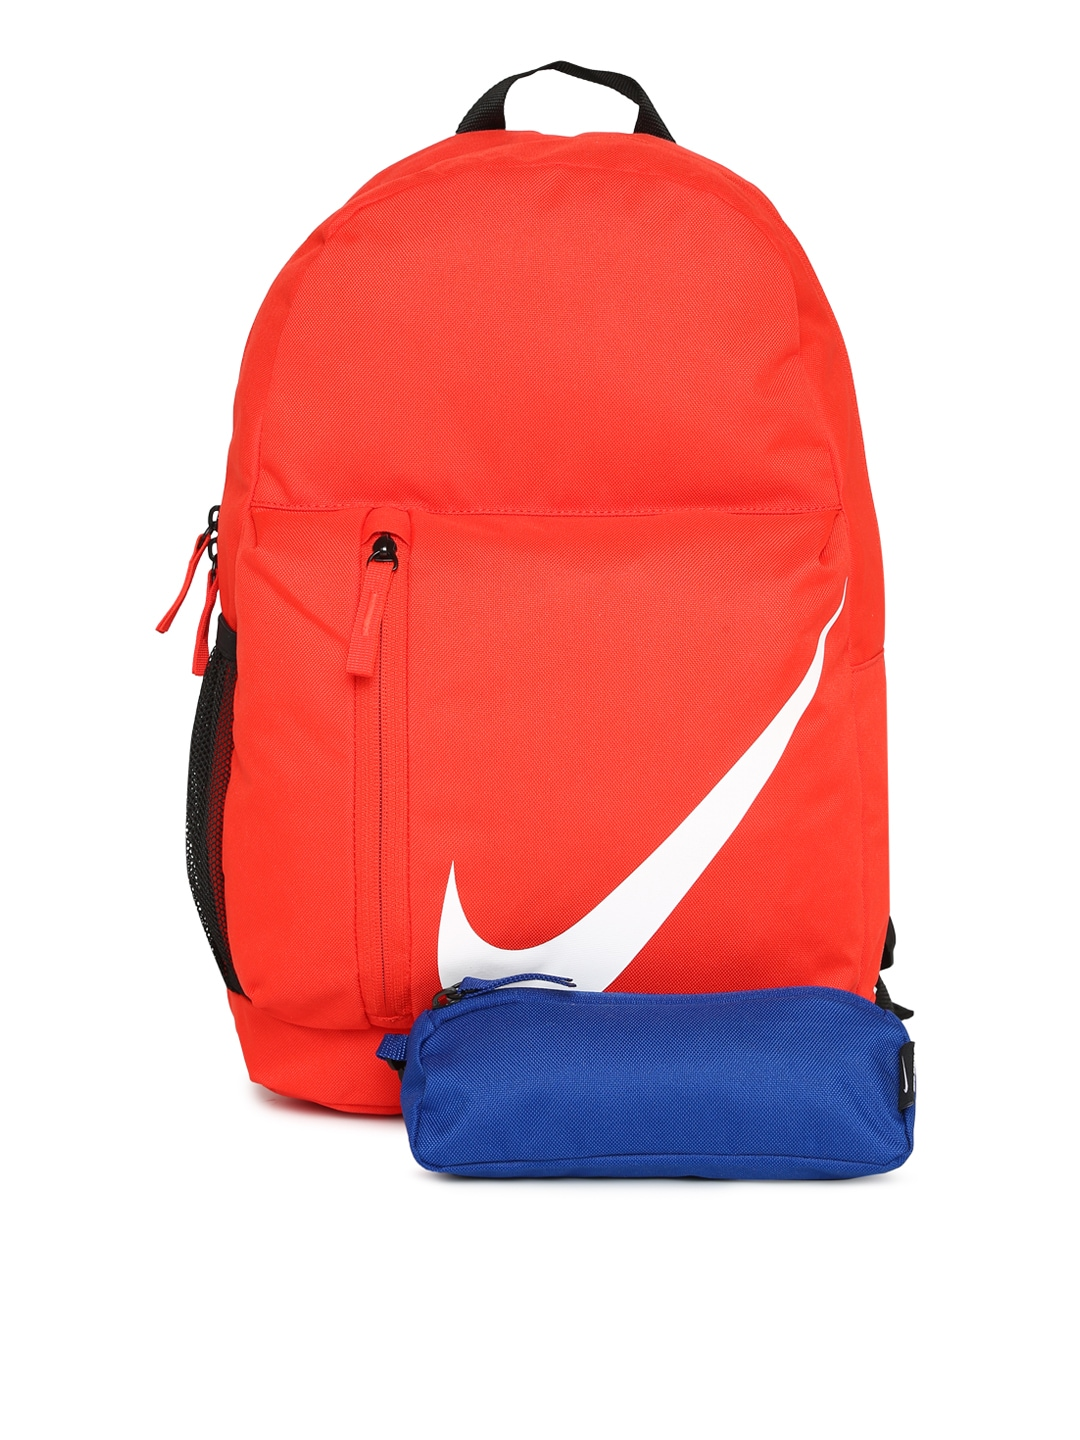 Nike Kids Red Elemental Brand Logo Backpack